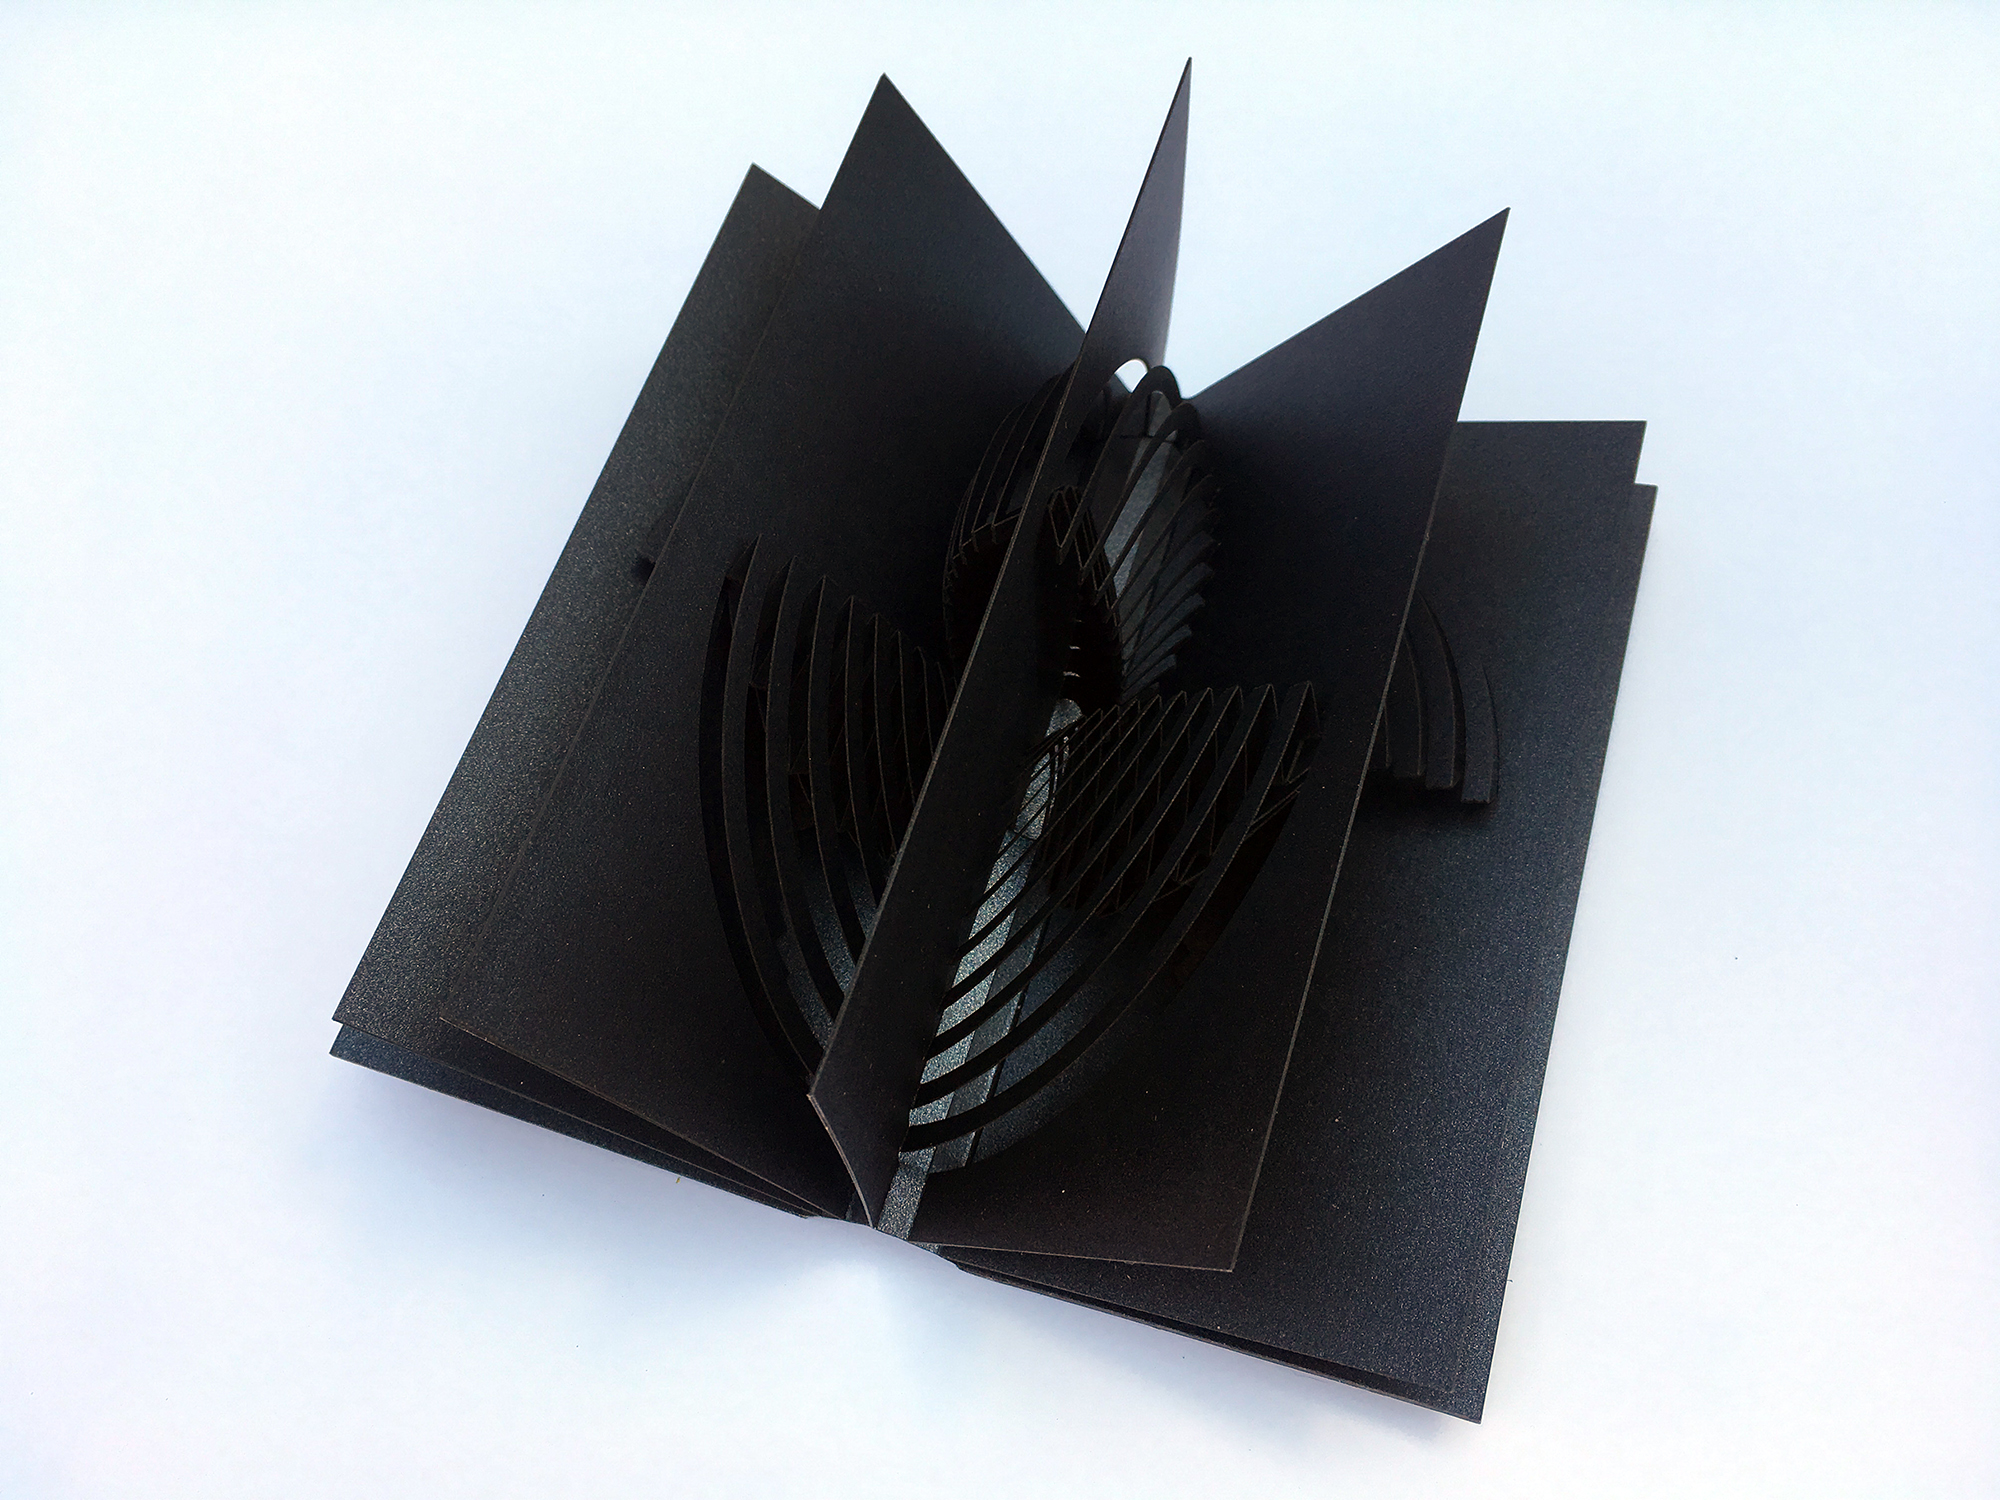 black book with intricate geometric popup